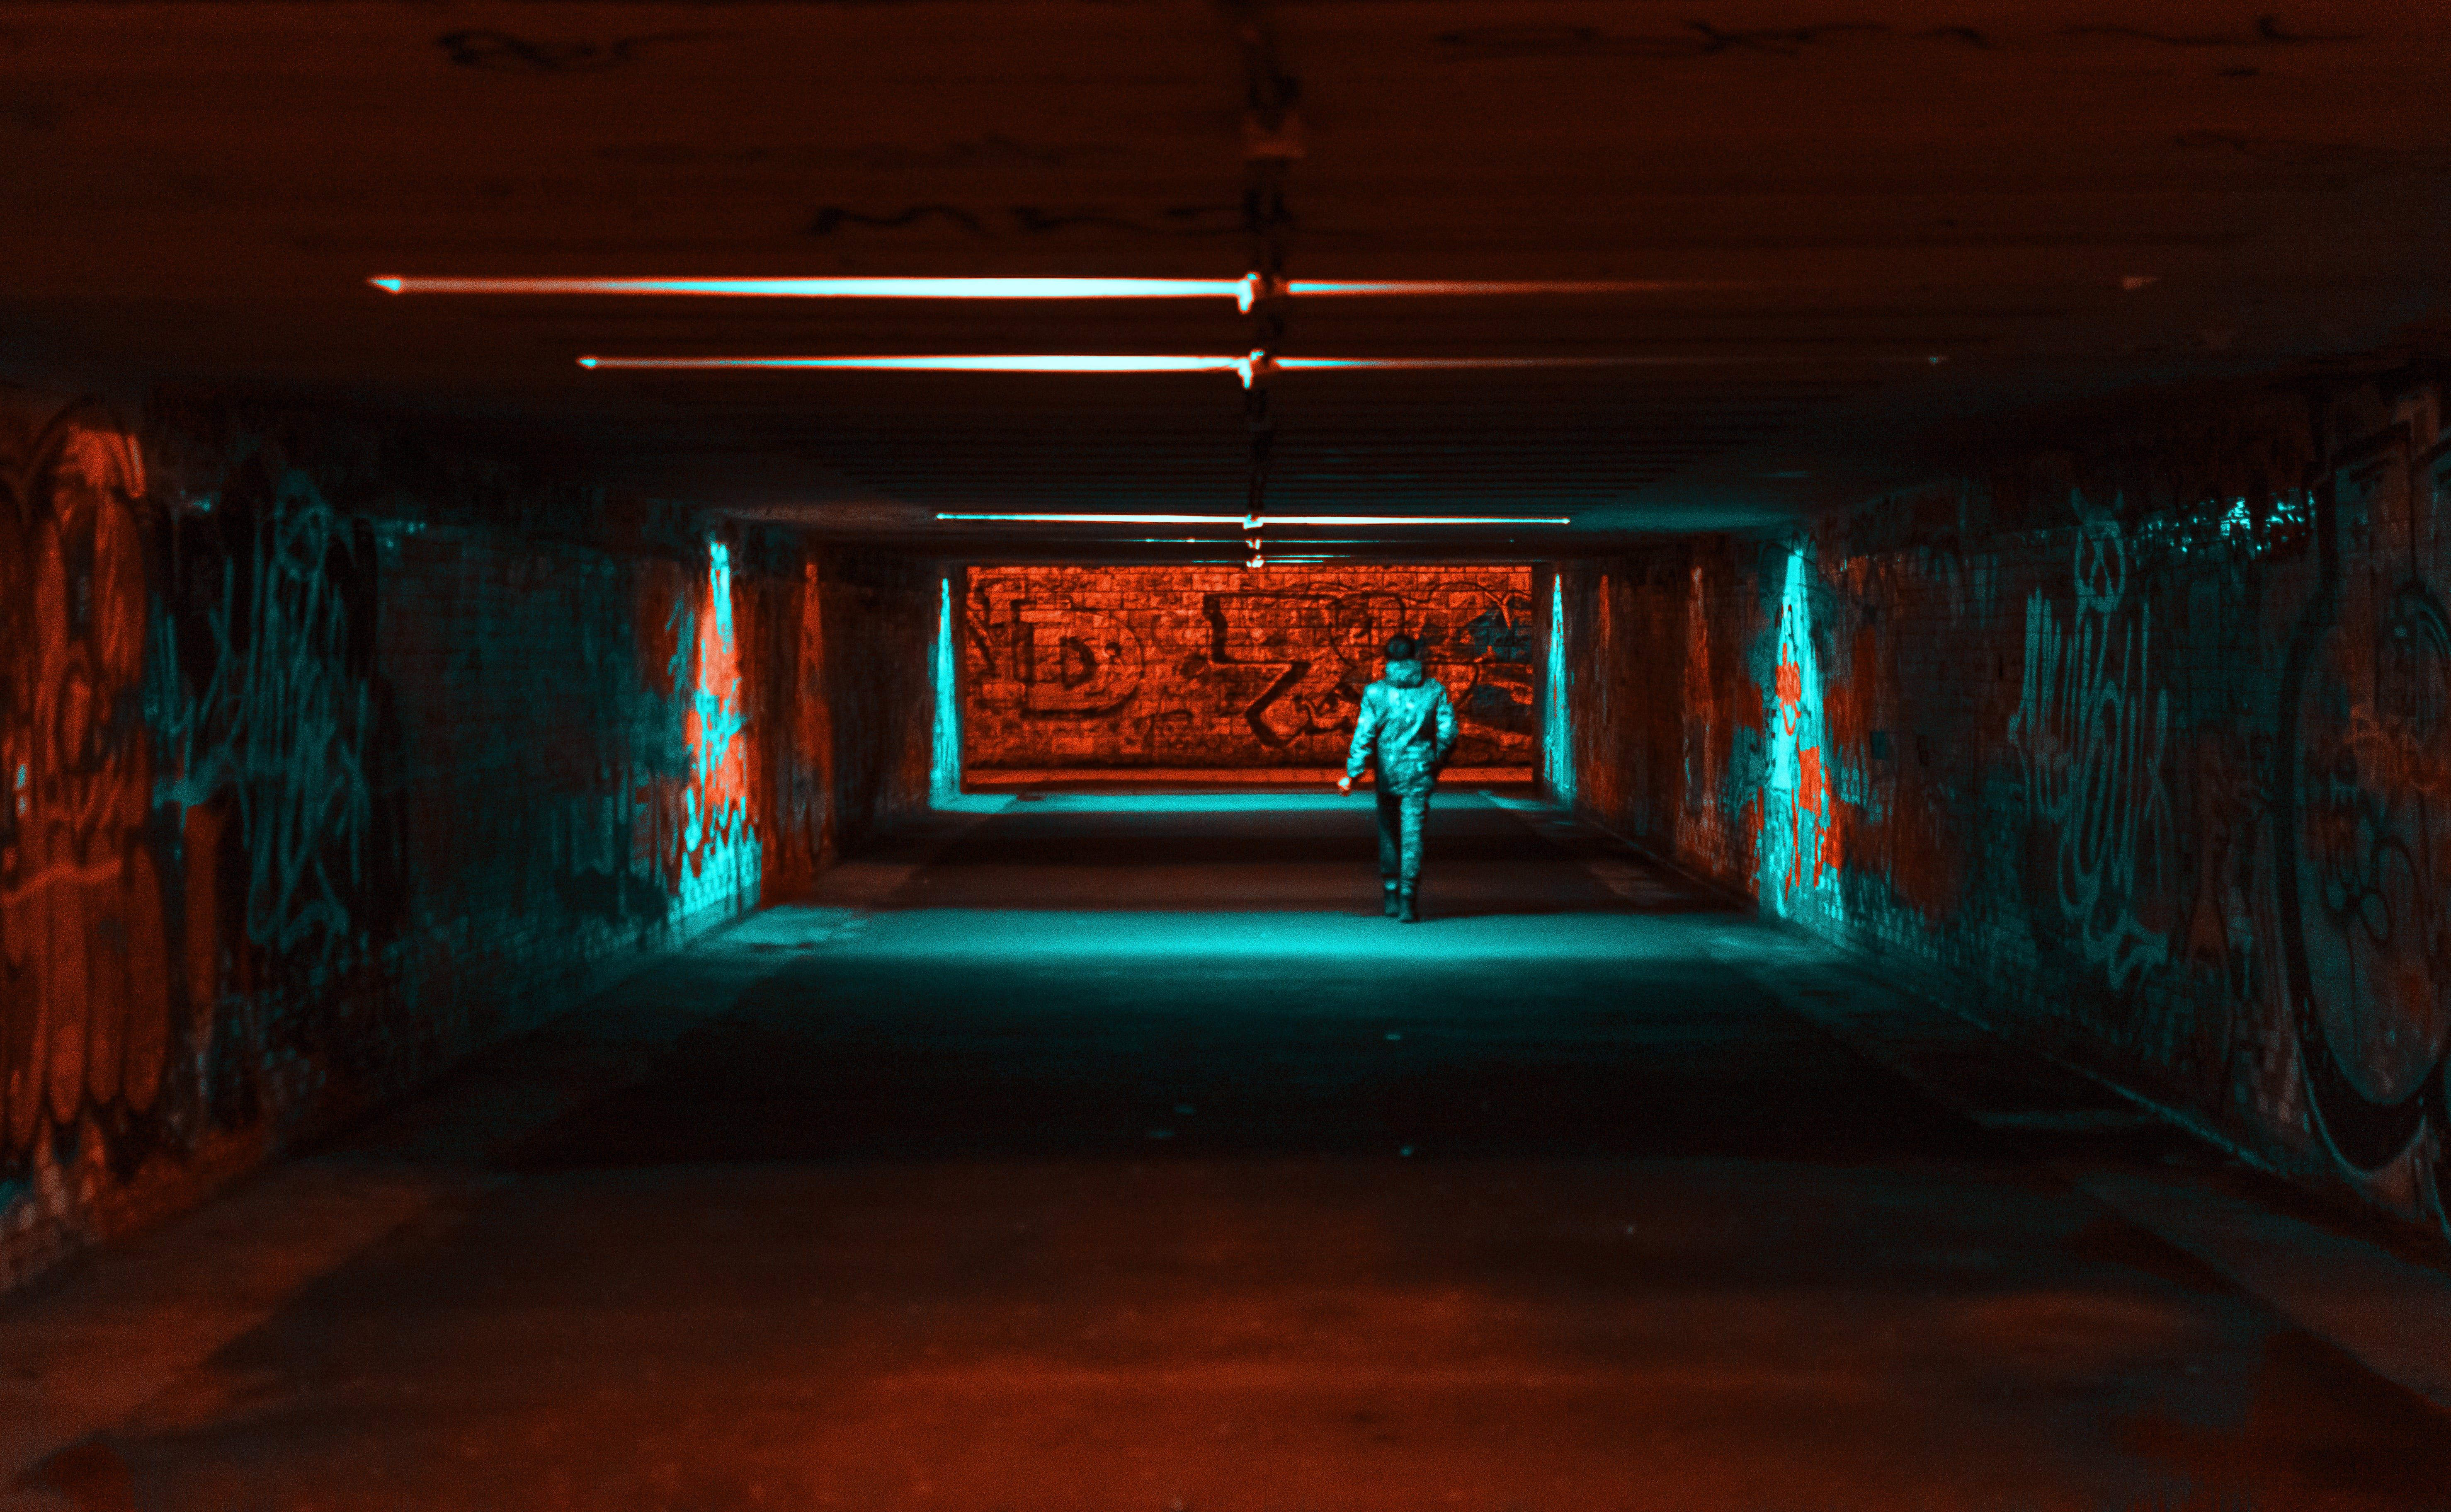 Person Wearing Jacket Walking on Tunnel With Red and Green Lights